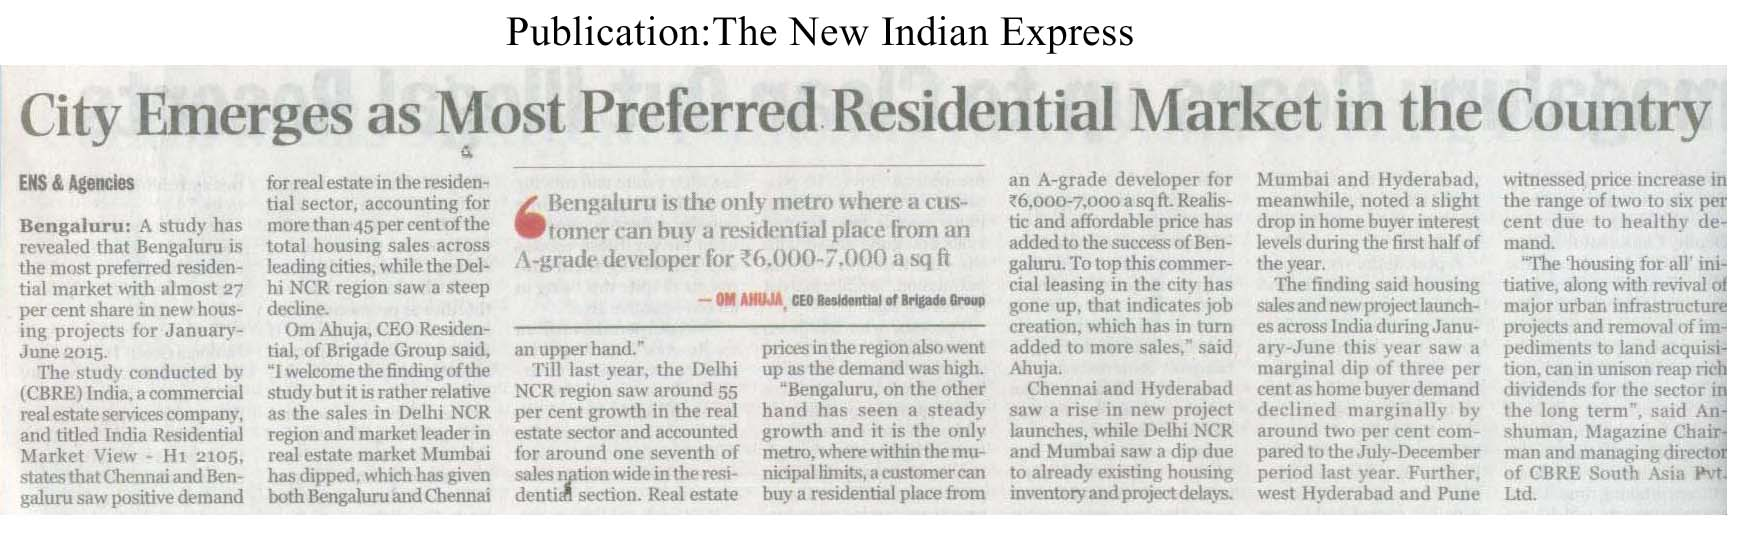 City emerges as most preferred residential market in the country